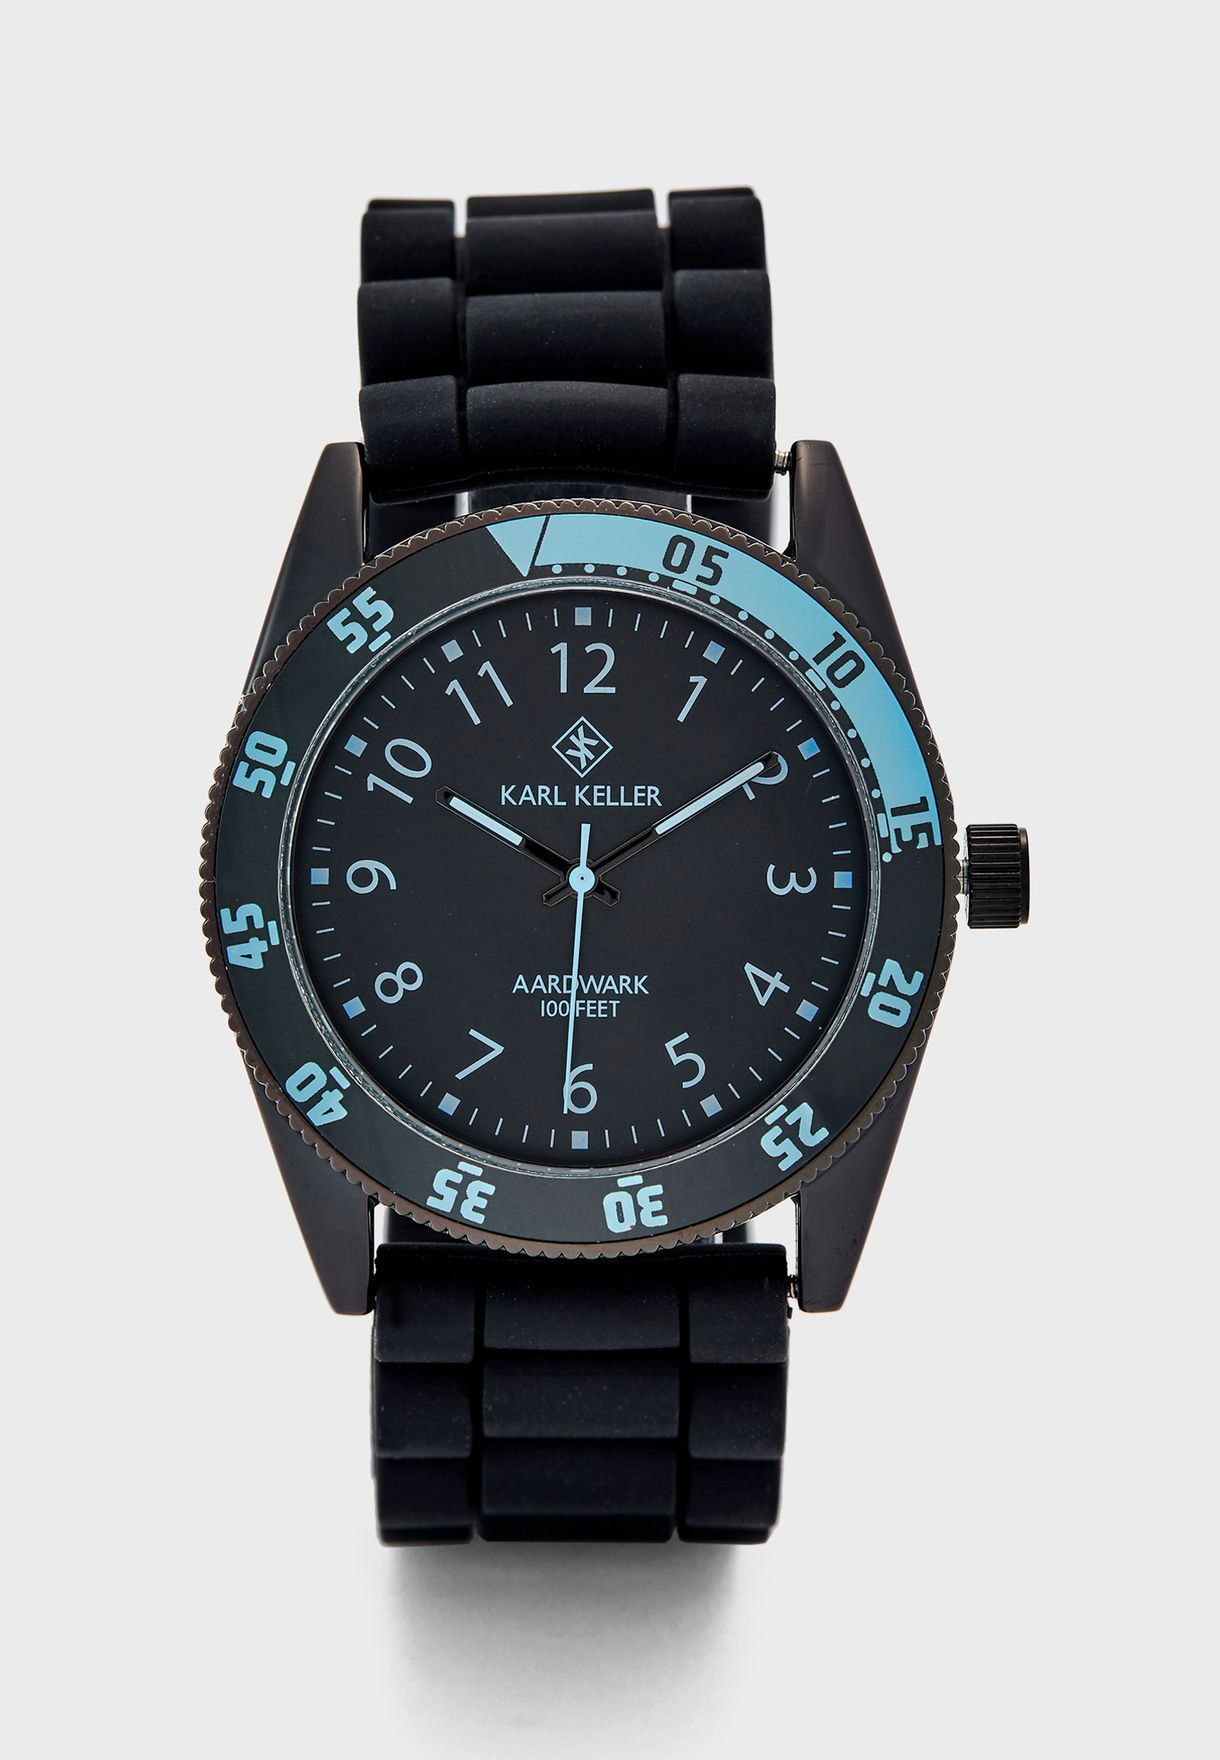 Aardwark Analog Watch